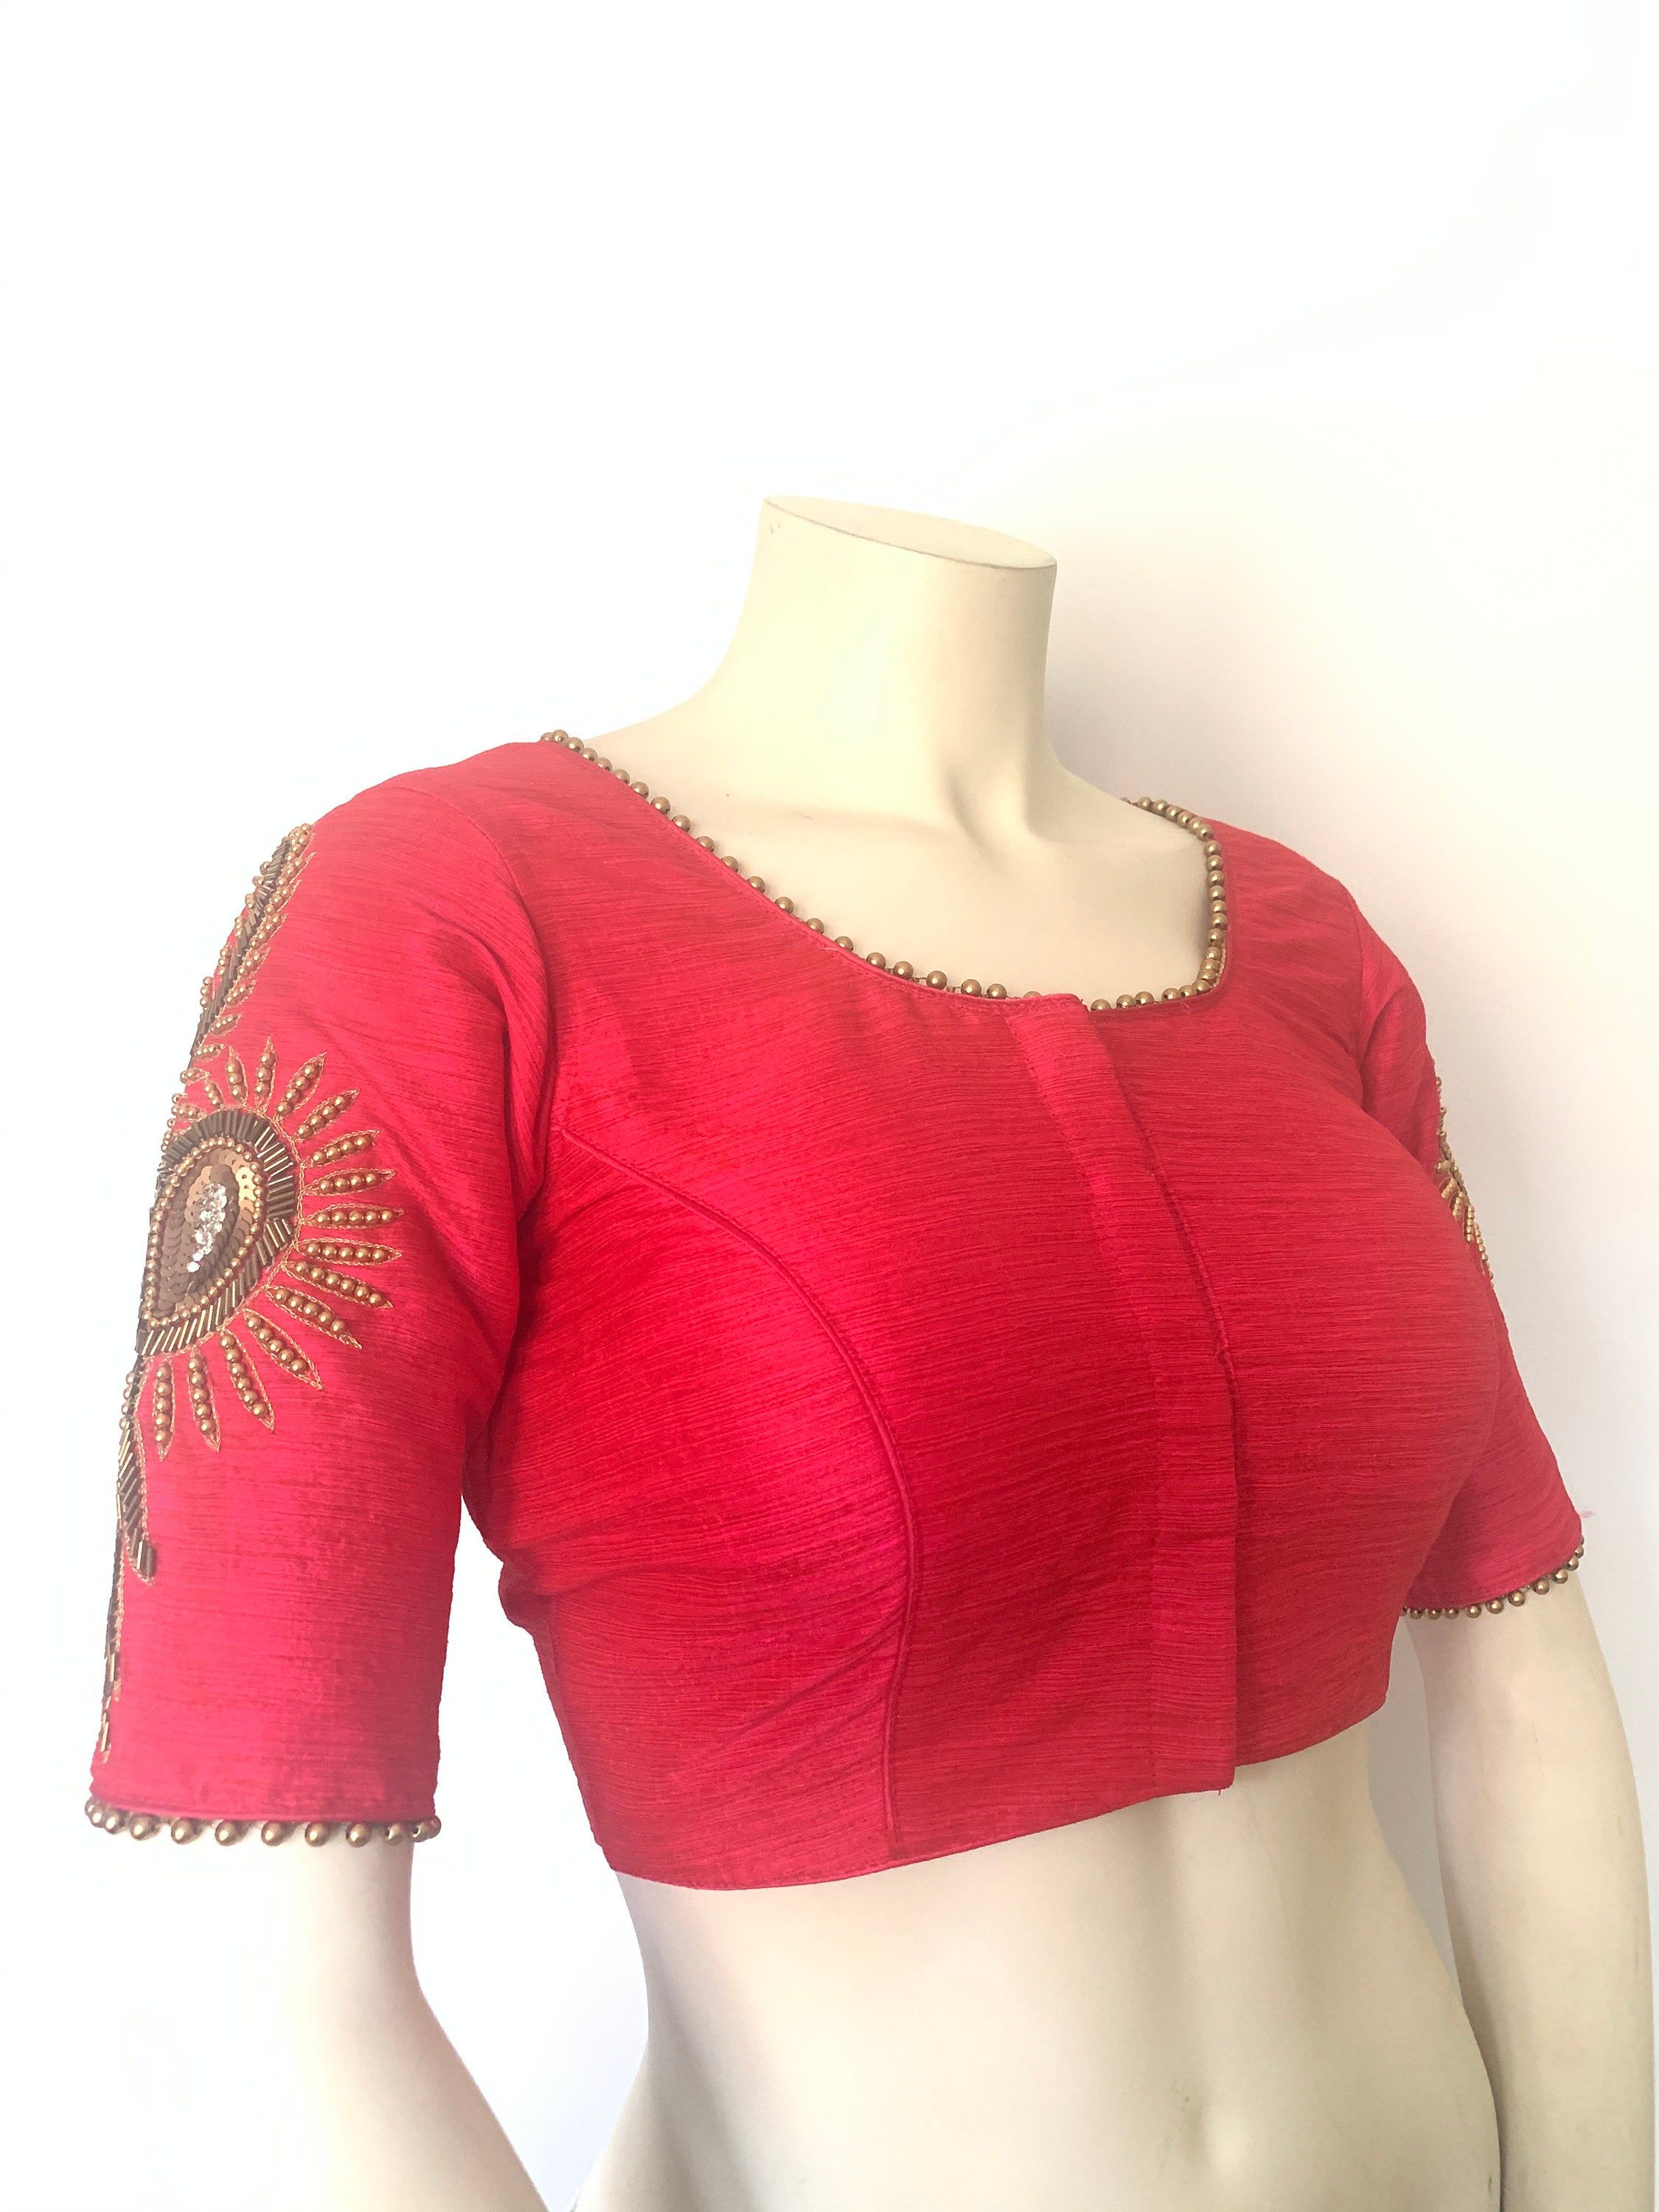 Free Shipping Sari Blouse Readymade Designer Saree Blouse Size 36 Stitched Indian Blouse for Women